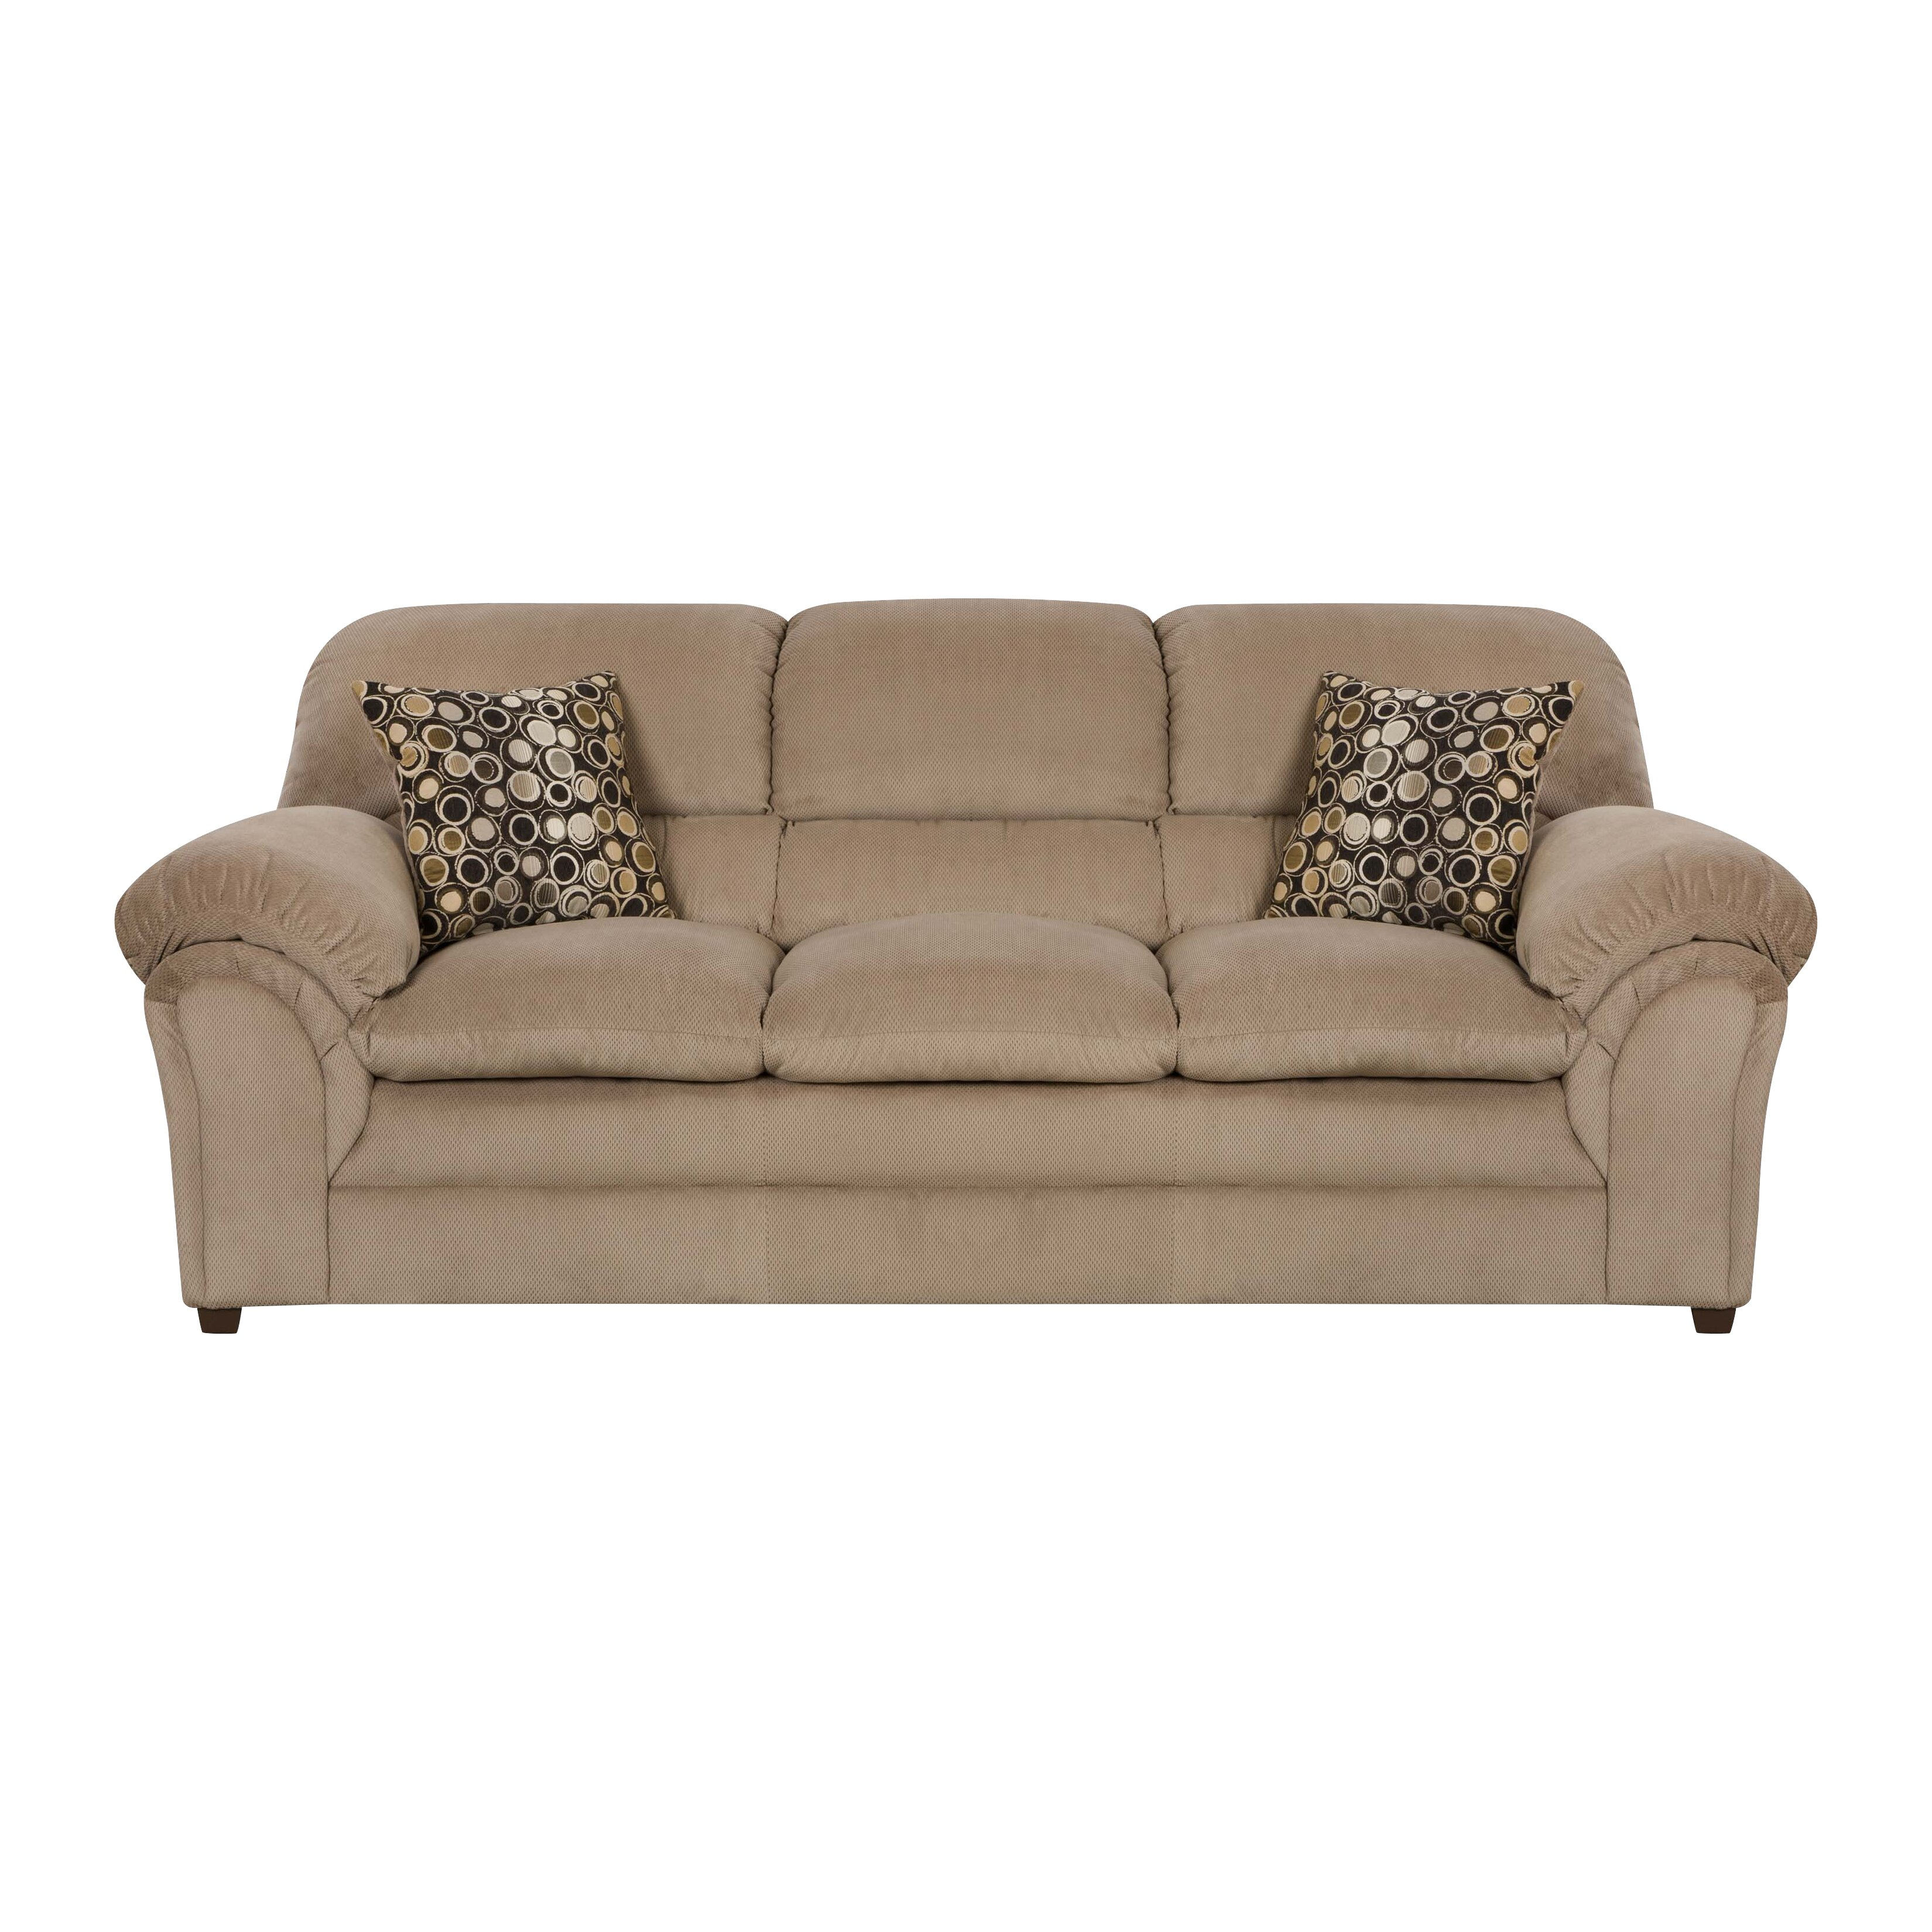 Simmons Living Room Furniture Reviews